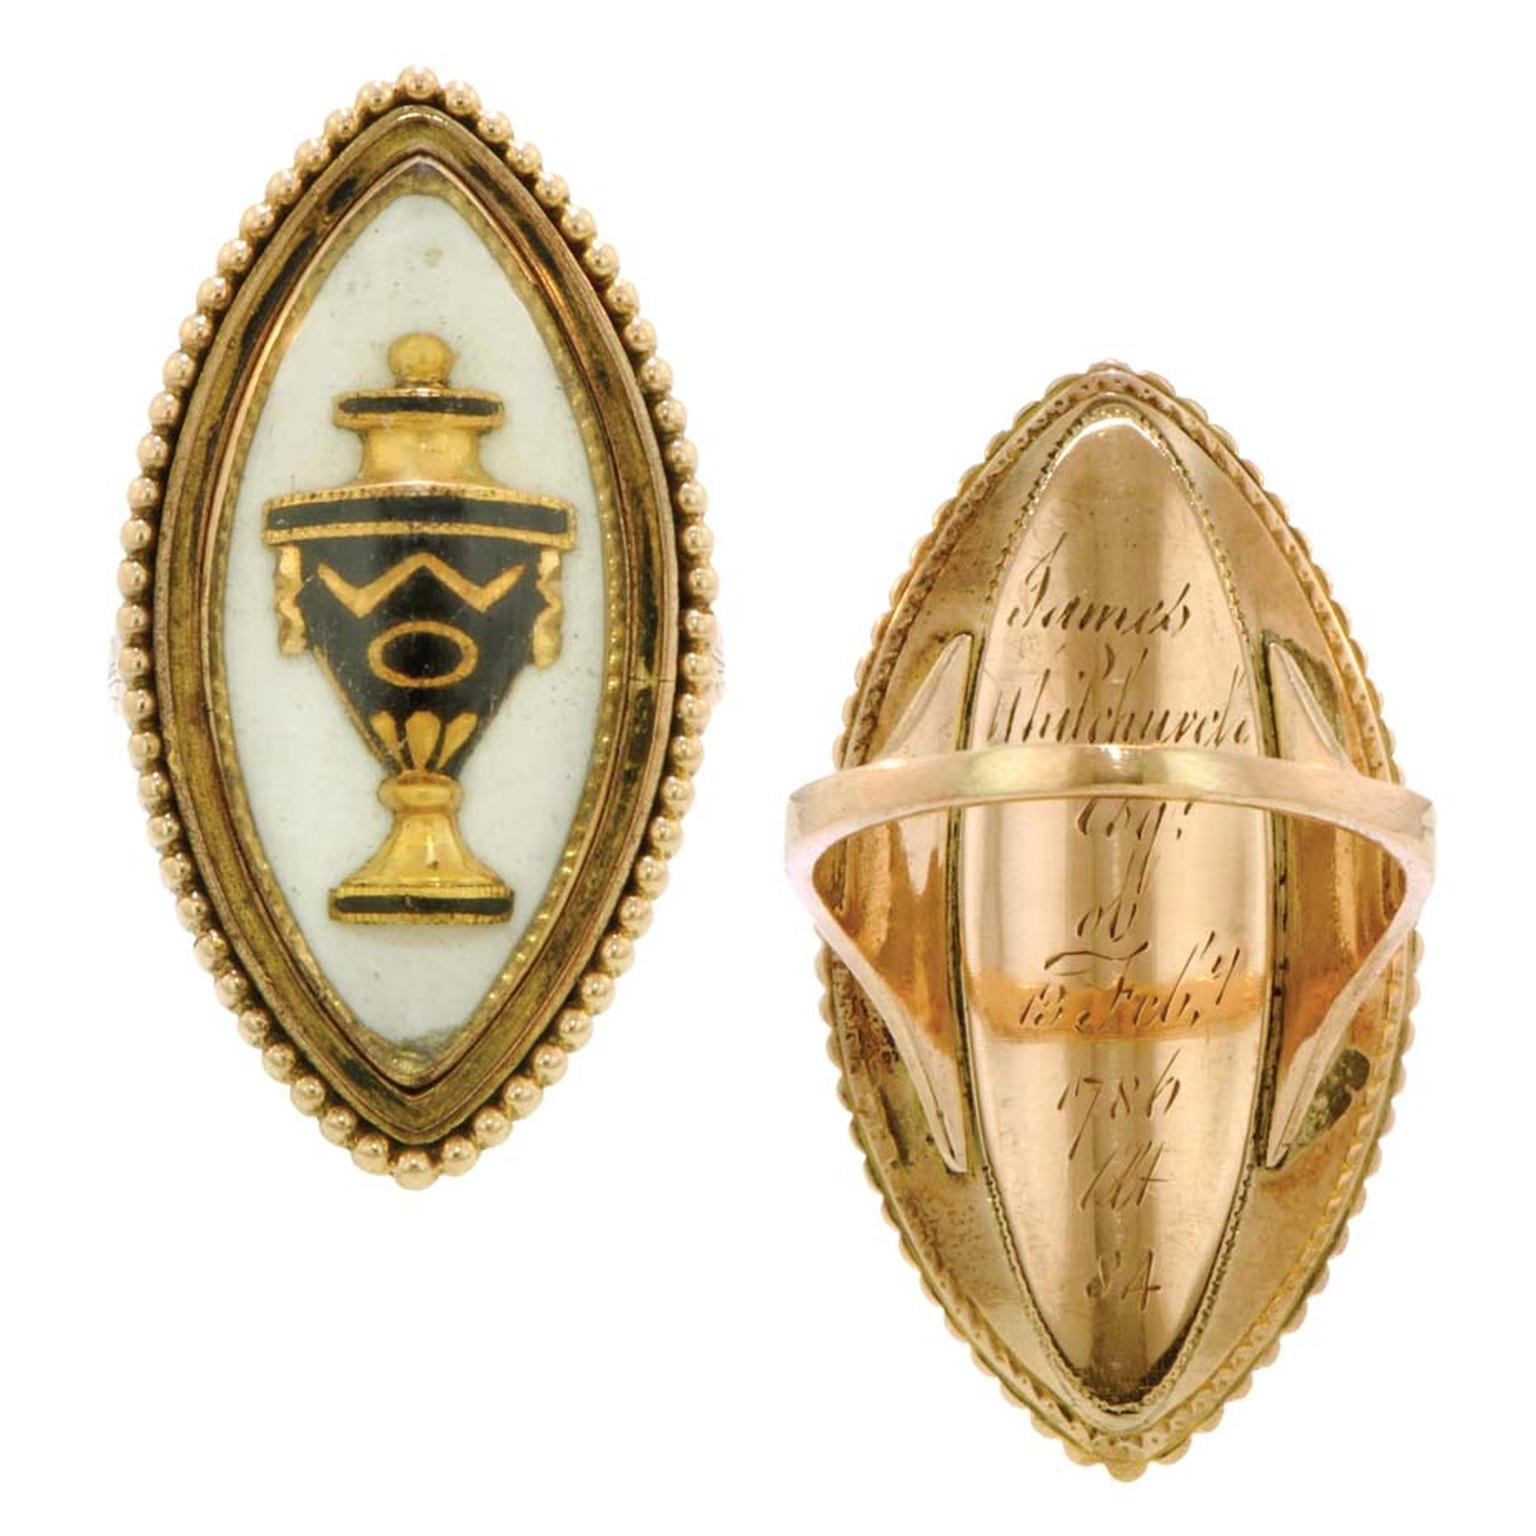 Mourning ring from 1786 featuring a black enameled urn under rock crystal in a navette-shaped frame with a beaded edge, engraved on the reverse Doyle & Doyle.